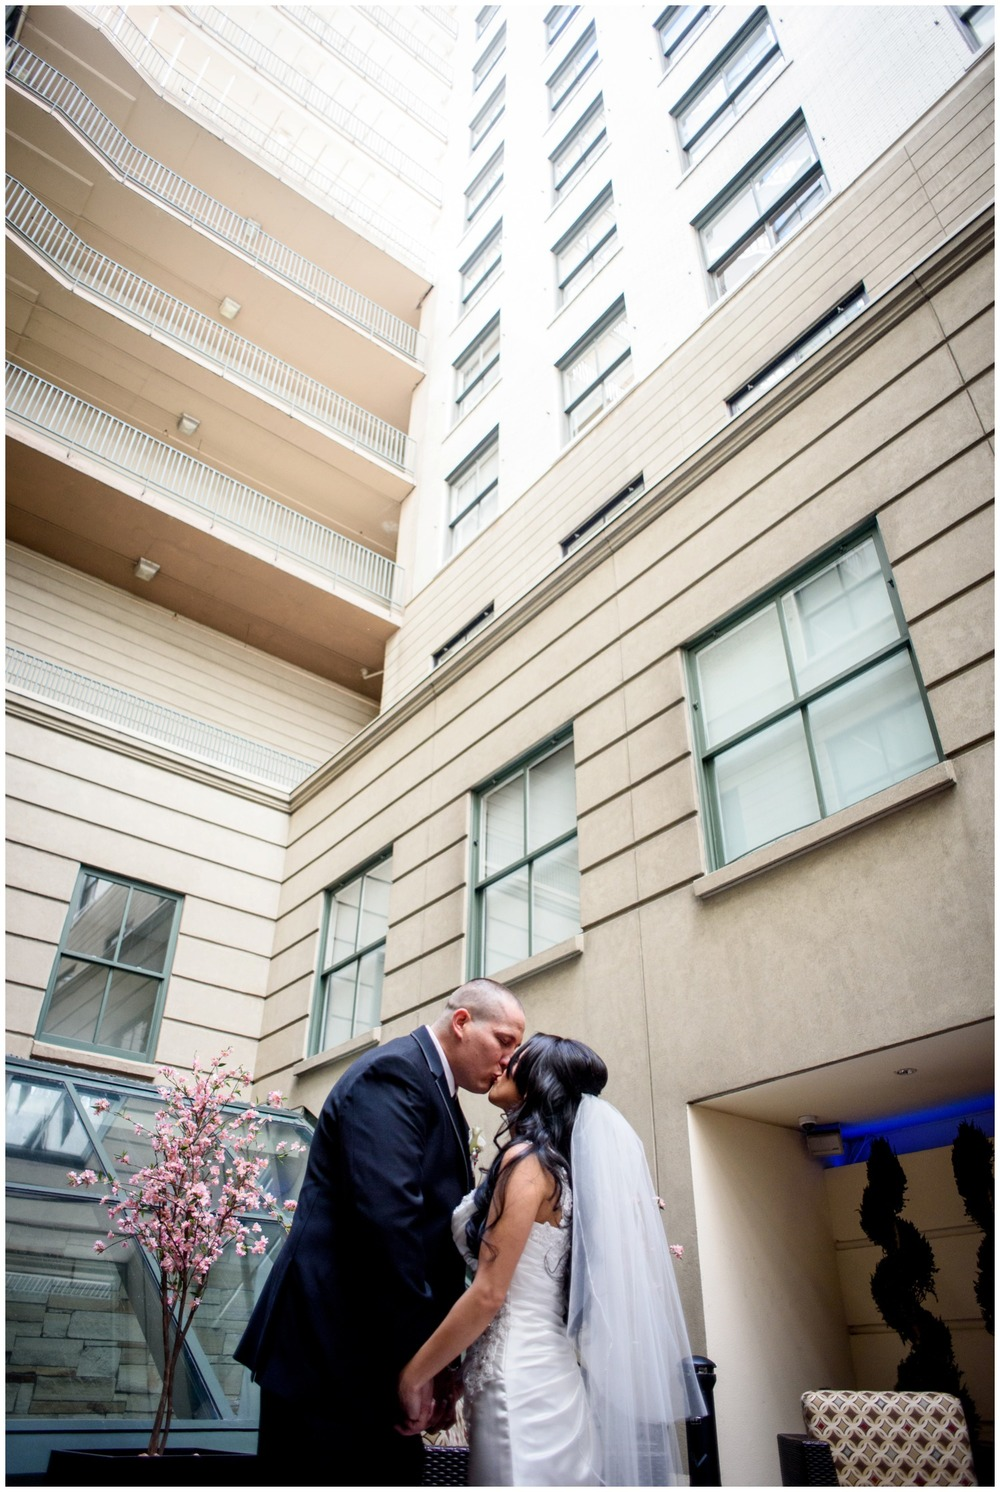 245-Downtown-Denver-Magnolia-Hotel-Wedding-photography.jpg